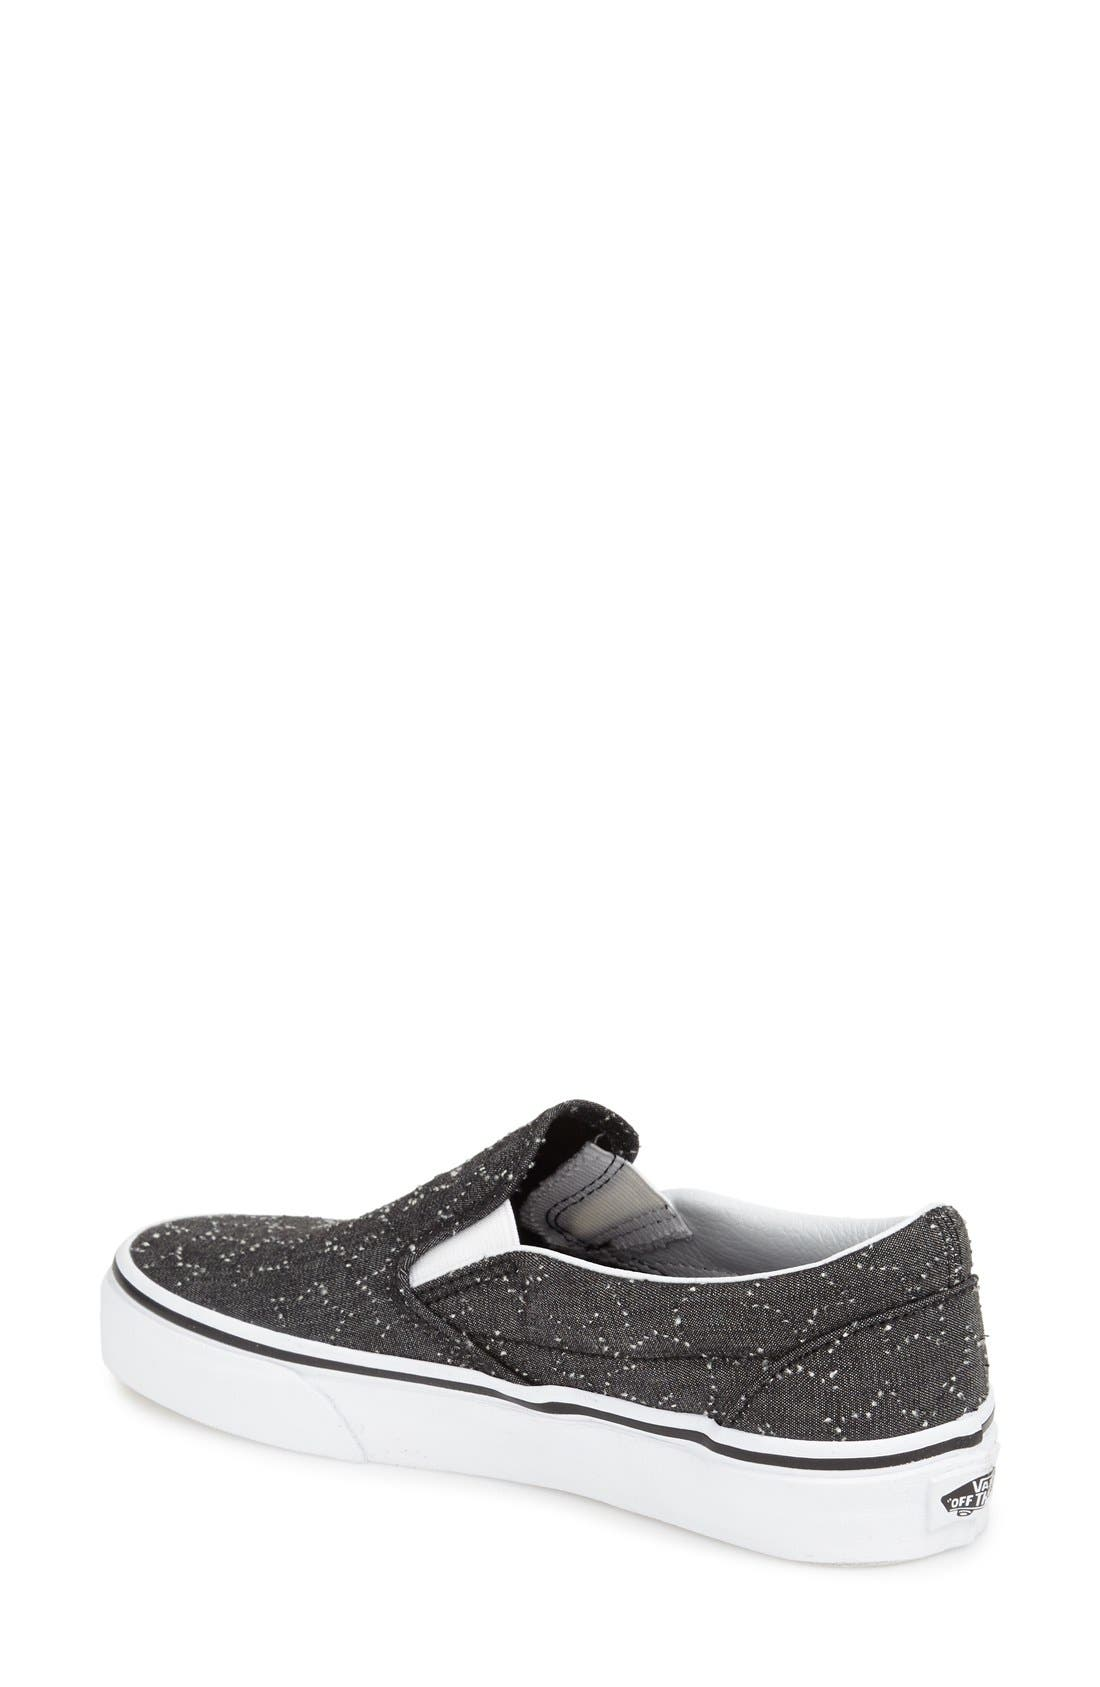 Classic Slip-On Sneaker,                             Alternate thumbnail 2, color,                             CHECKER FLORAL BLACK